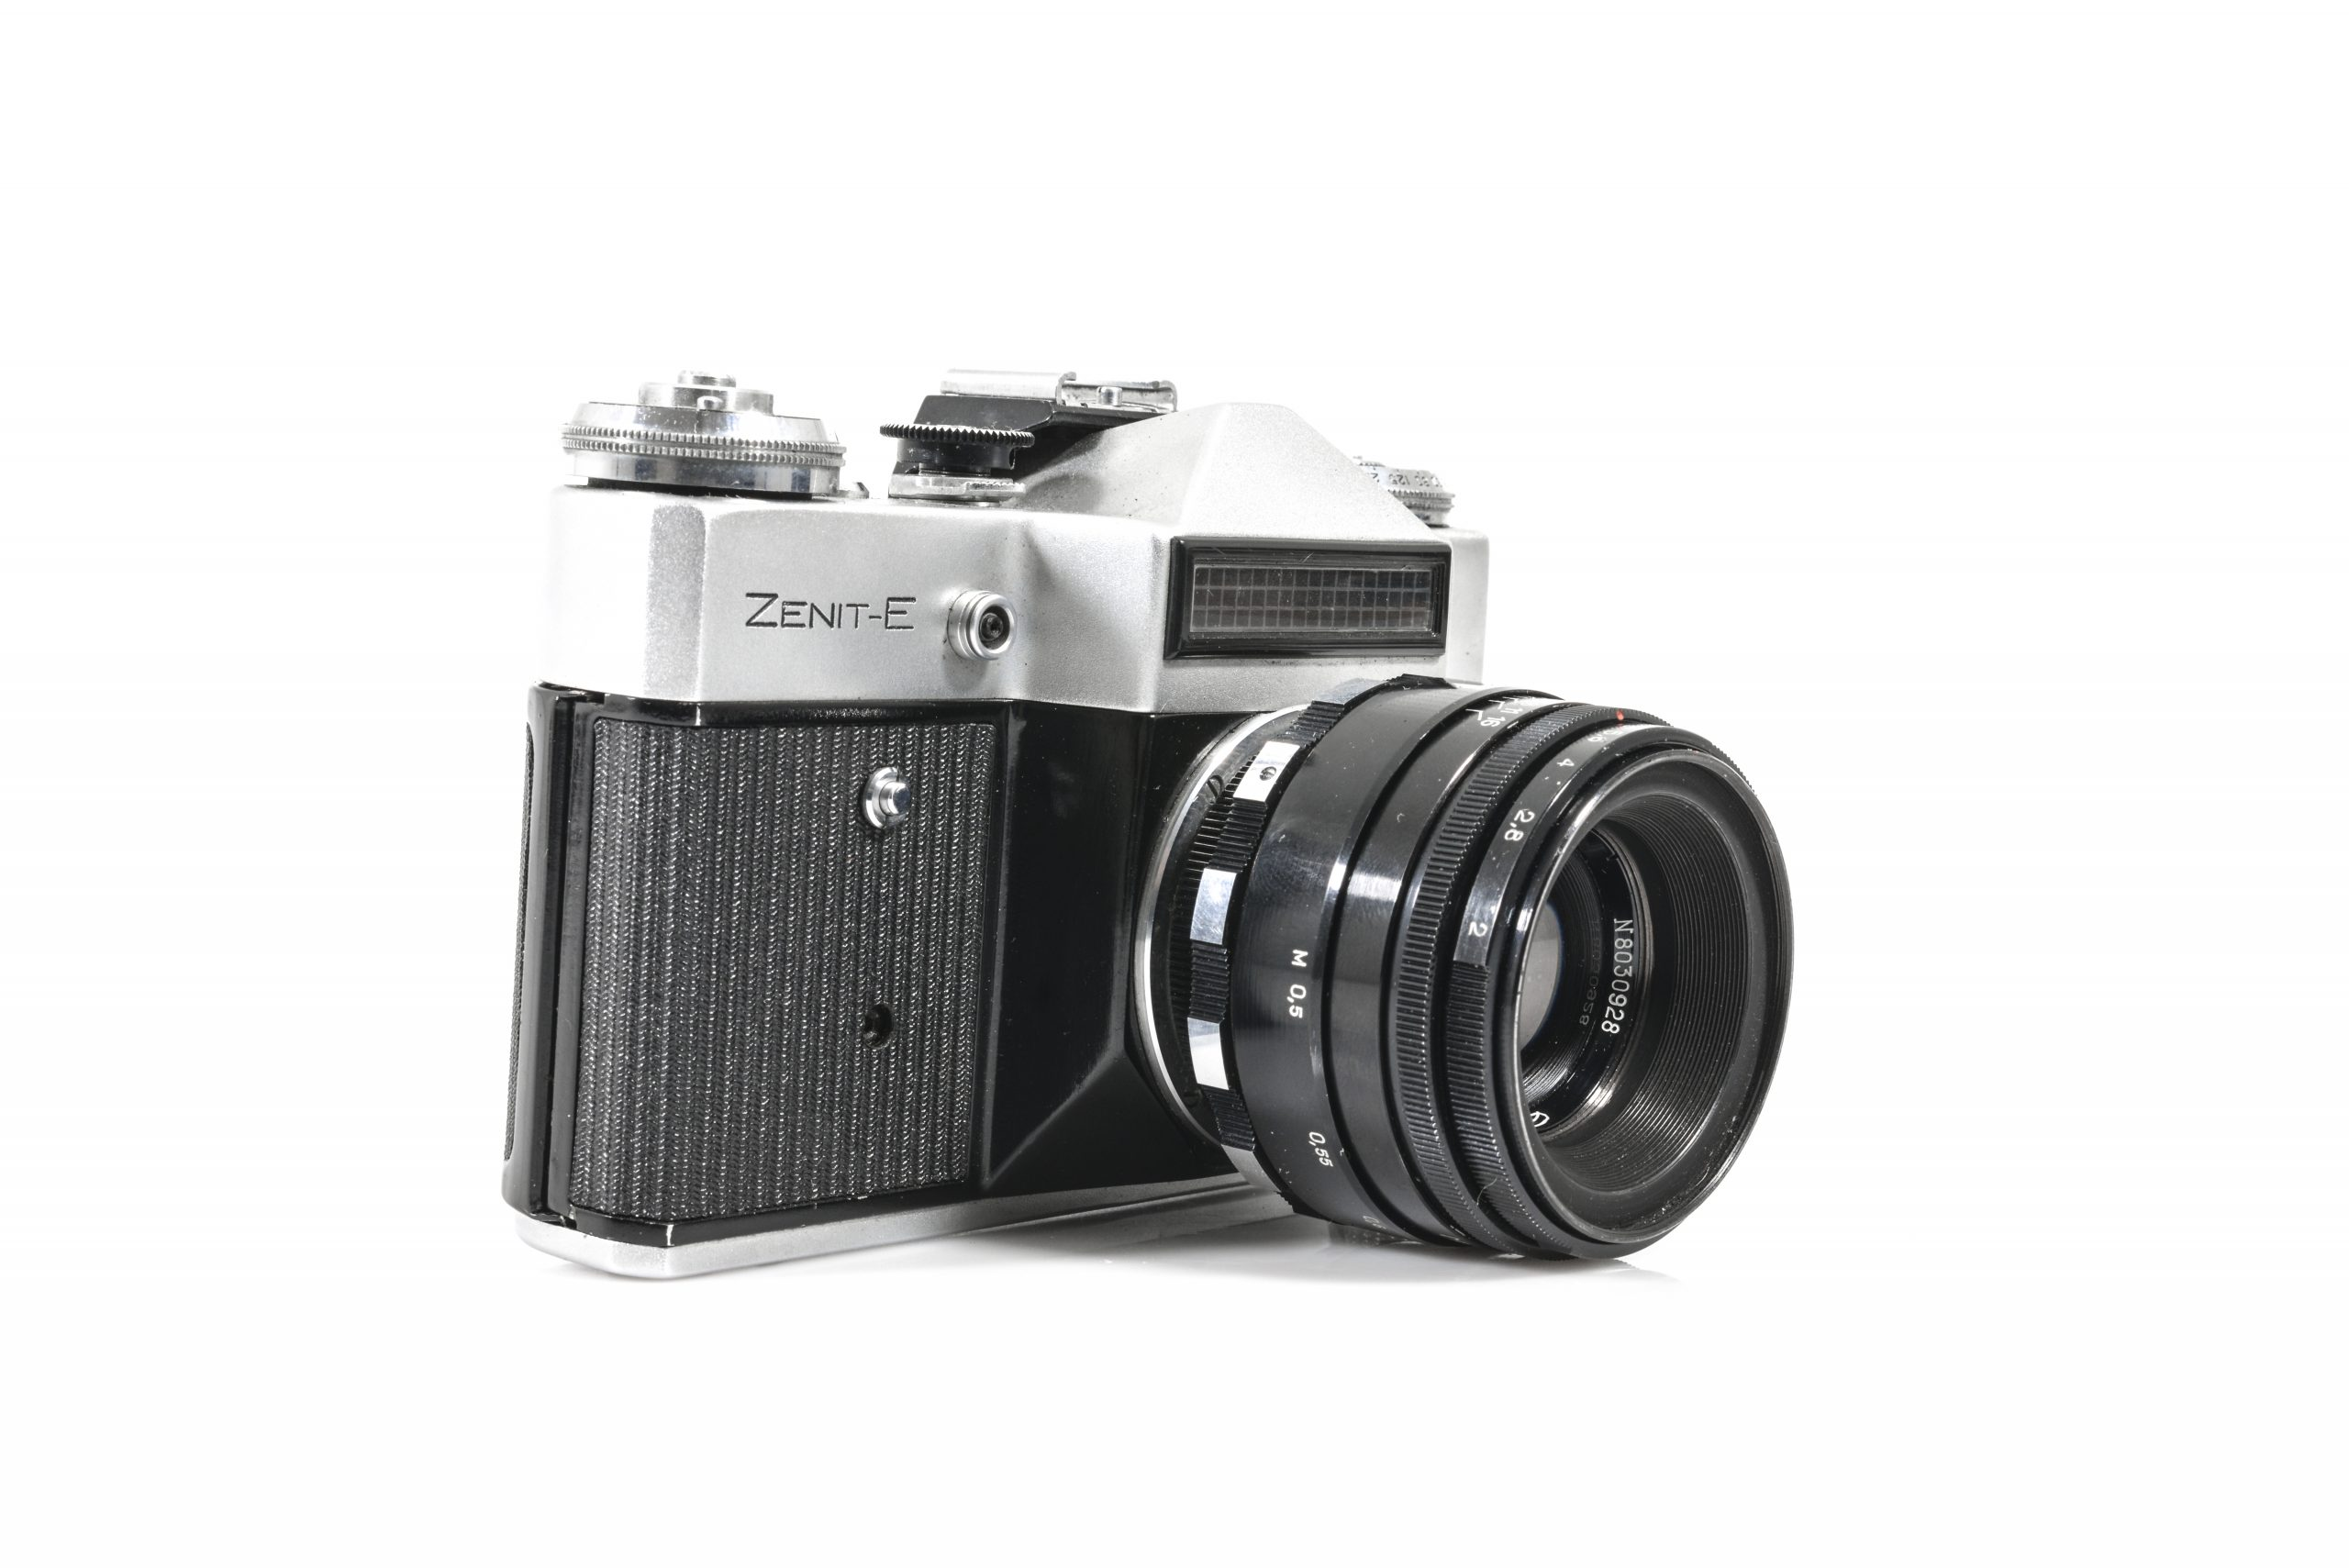 Lovely Zenit E 35mm Film Camera with Helios 44m 2/58 Lens (Excellent condition – Tested and Working)